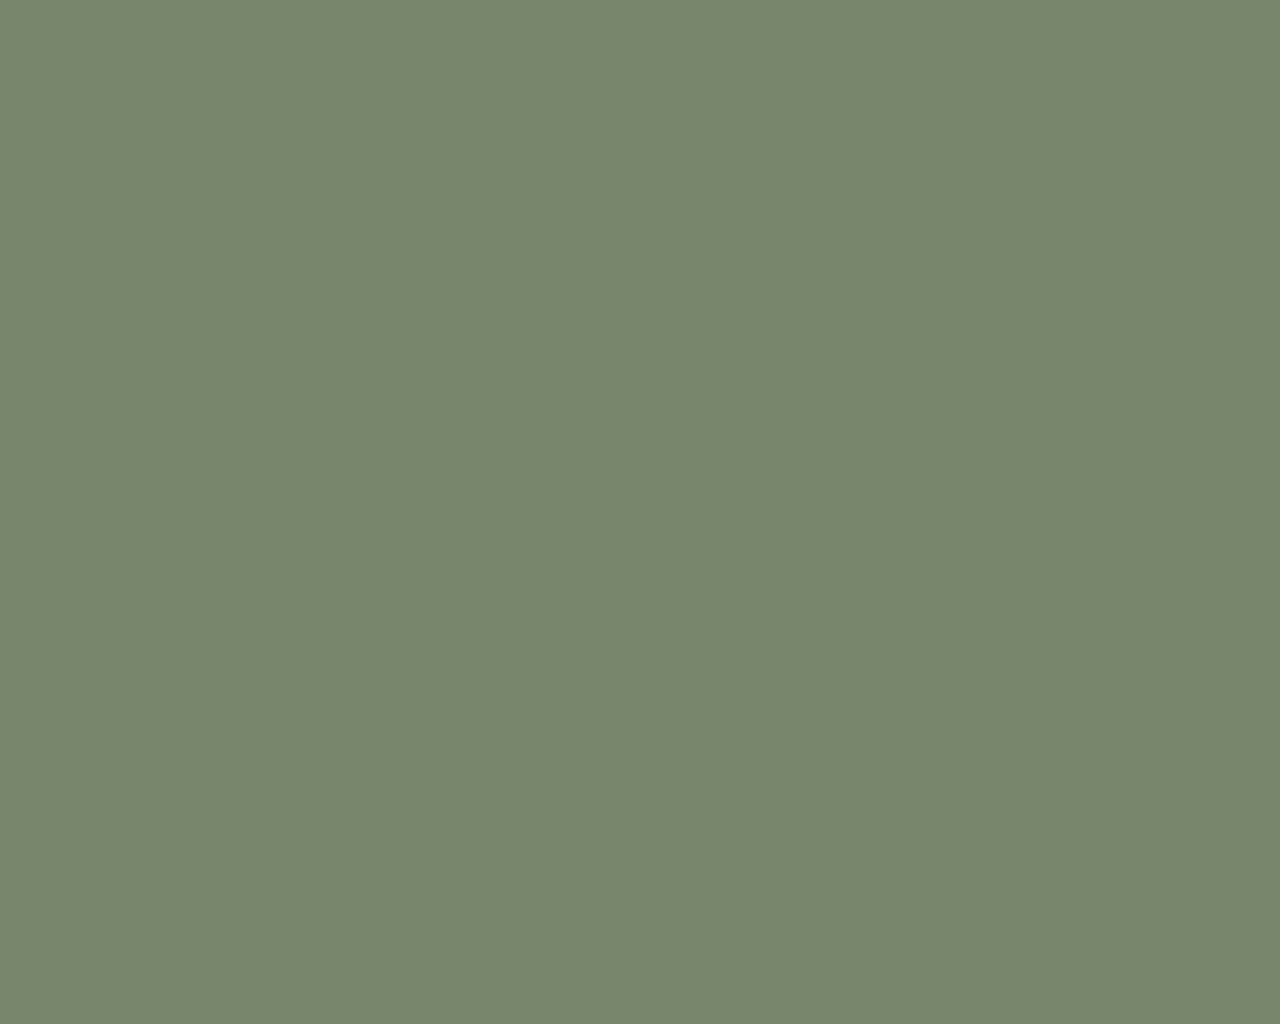 1280x1024 Camouflage Green Solid Color Background